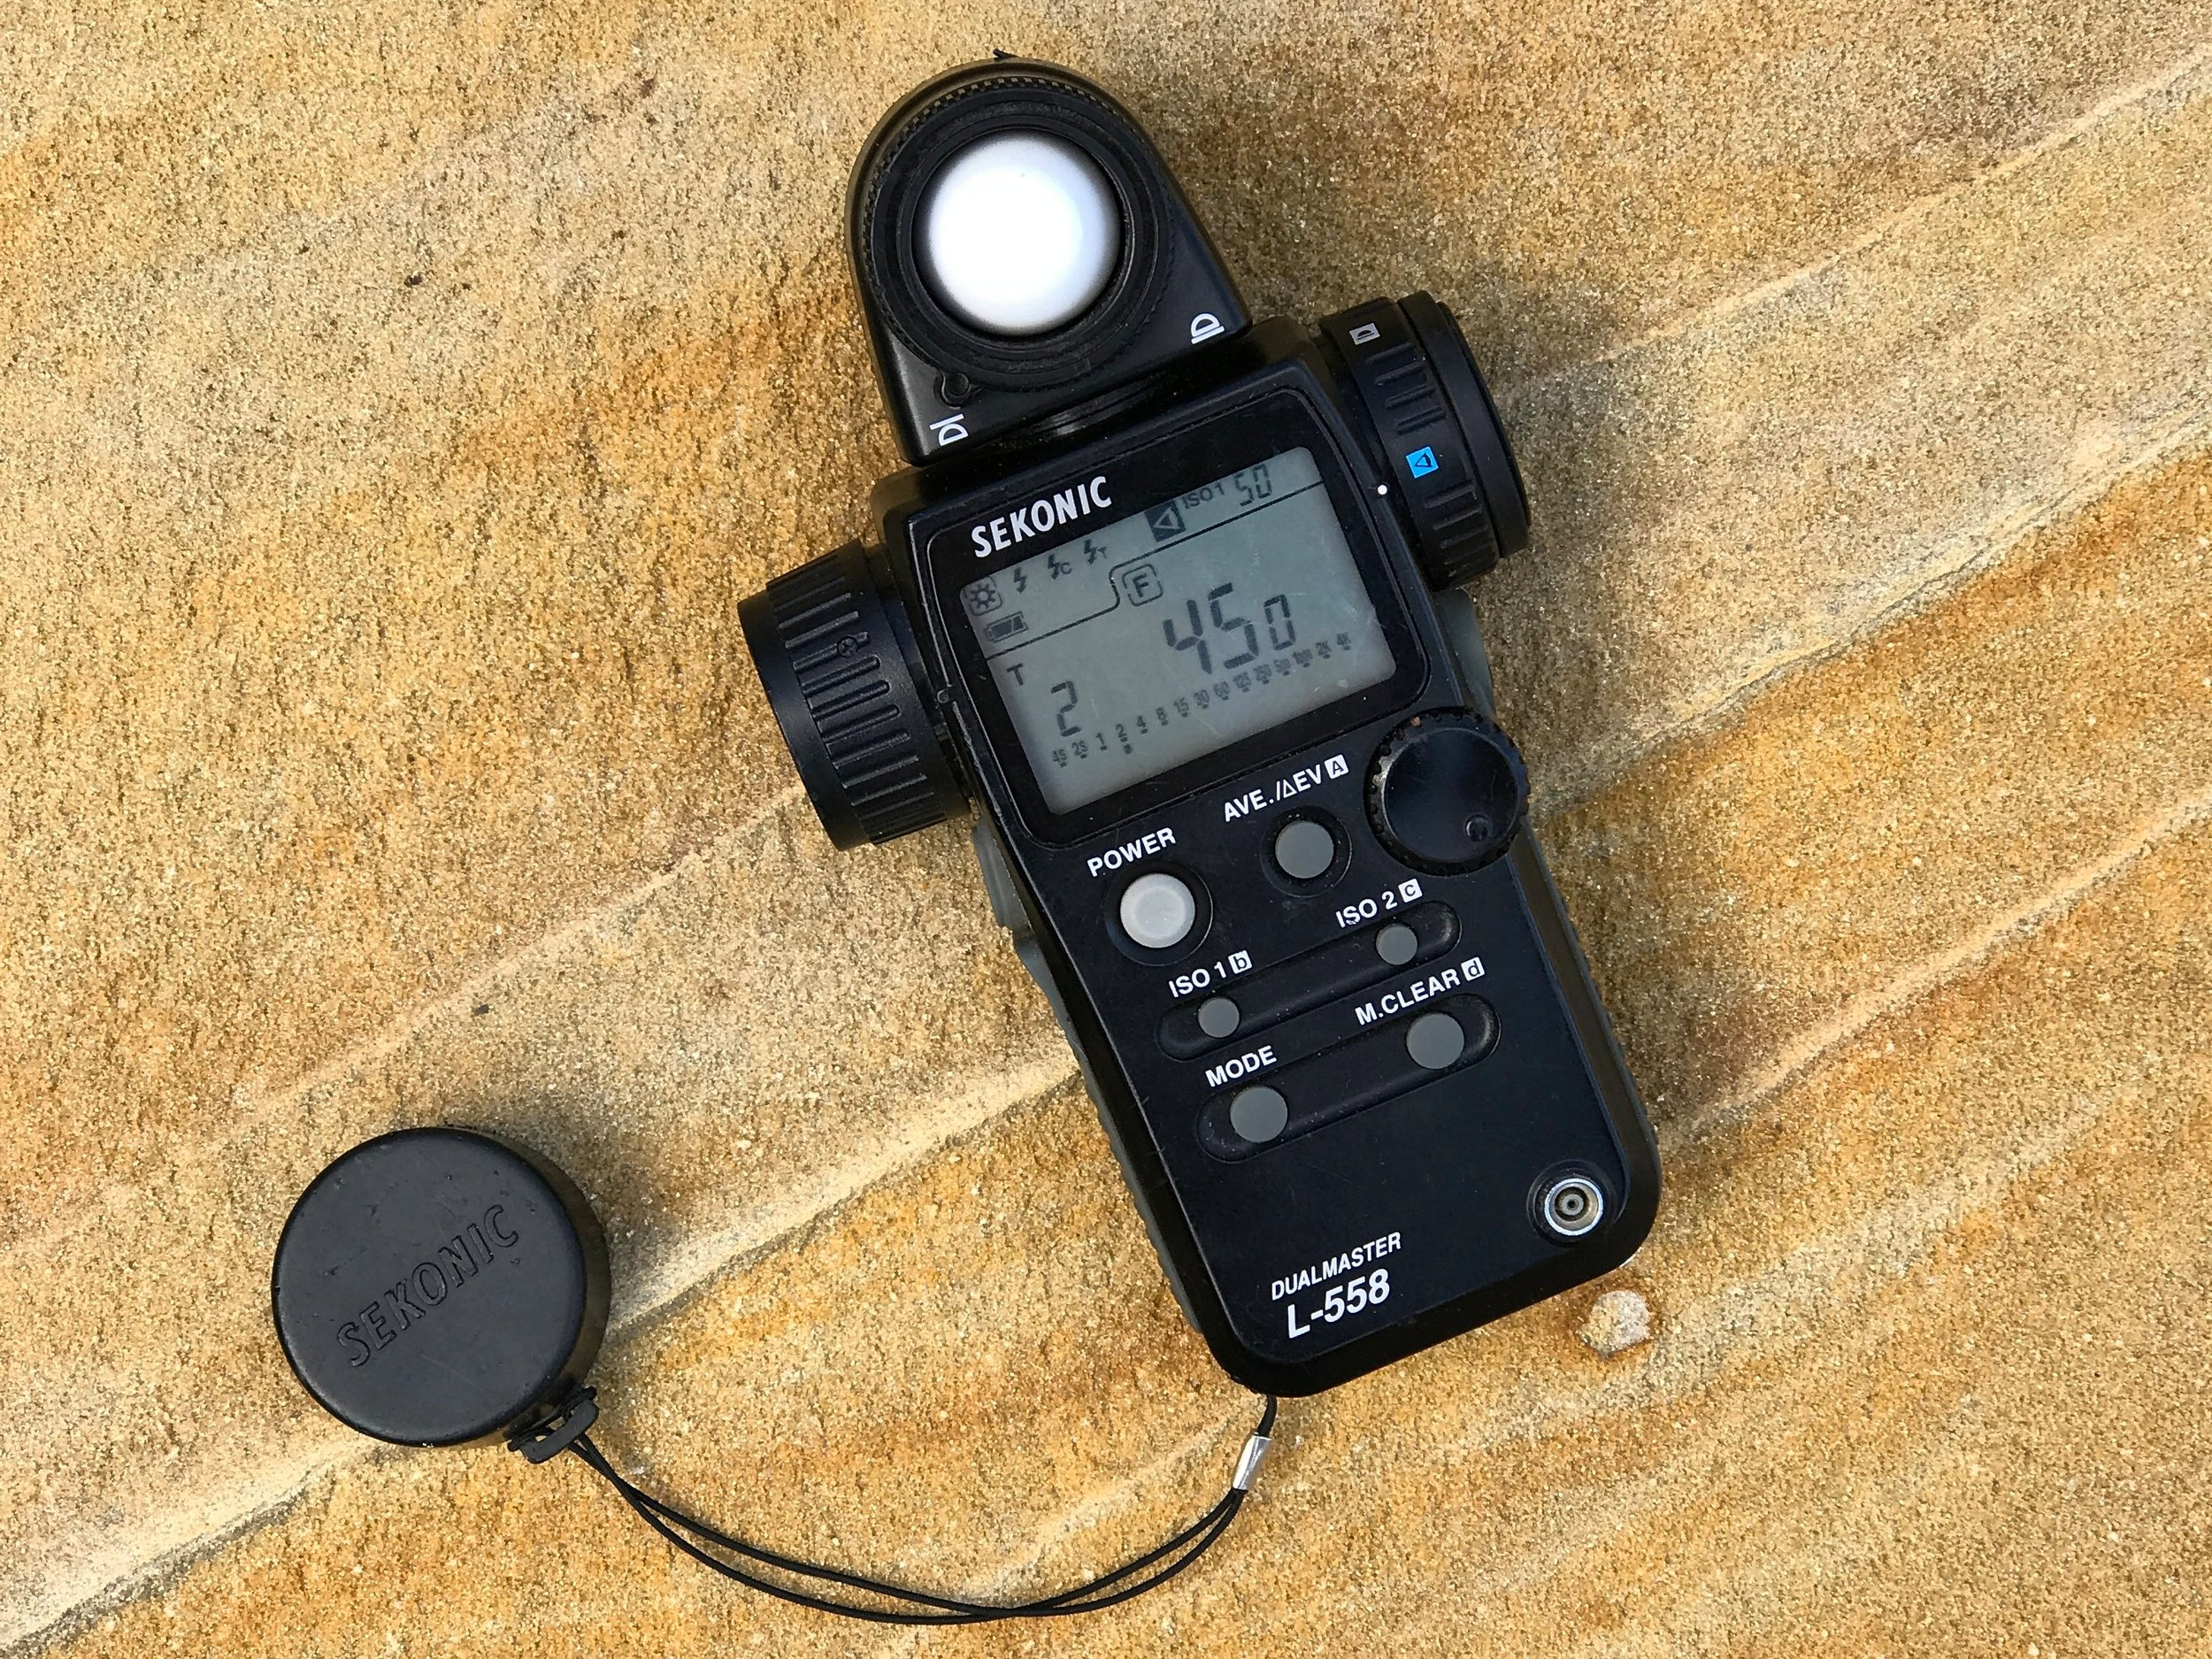 Now my backup meter, the Sekonic L-558 offers the photographer both a 1 degree spot and incident meter.